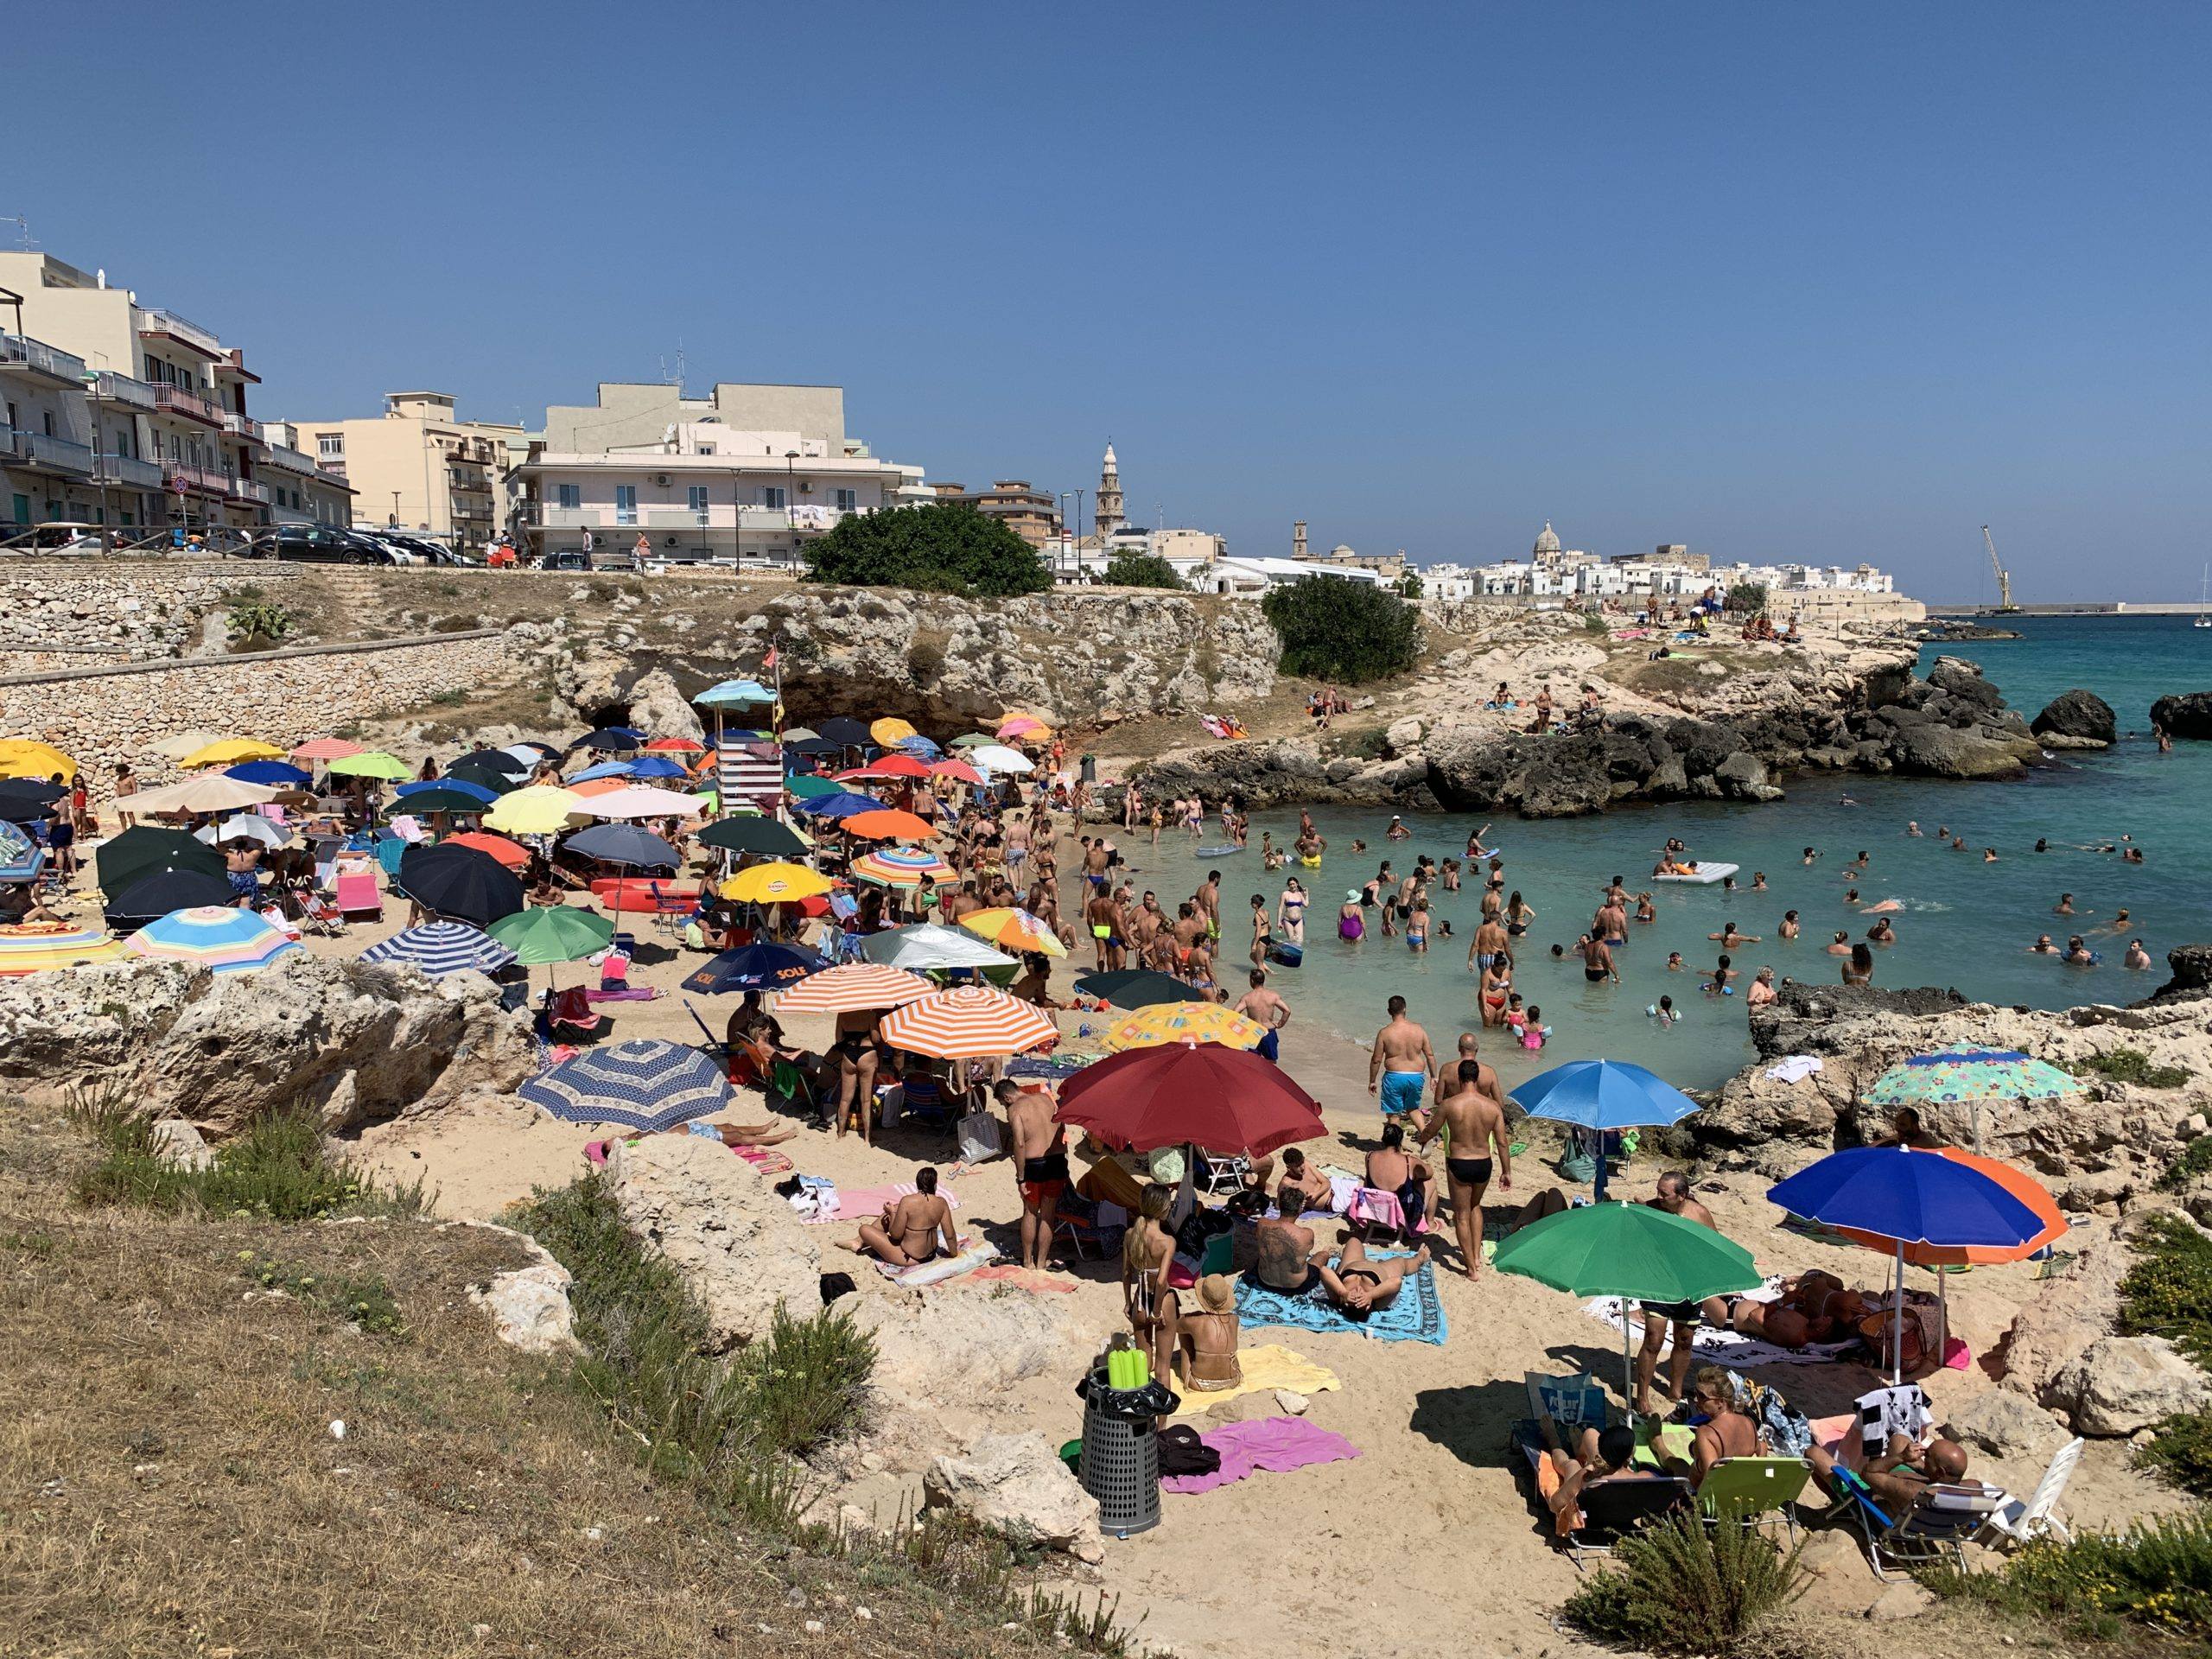 Porto Rosso beach in Monopoli, Puglia, is a bust town beach popular with locals.